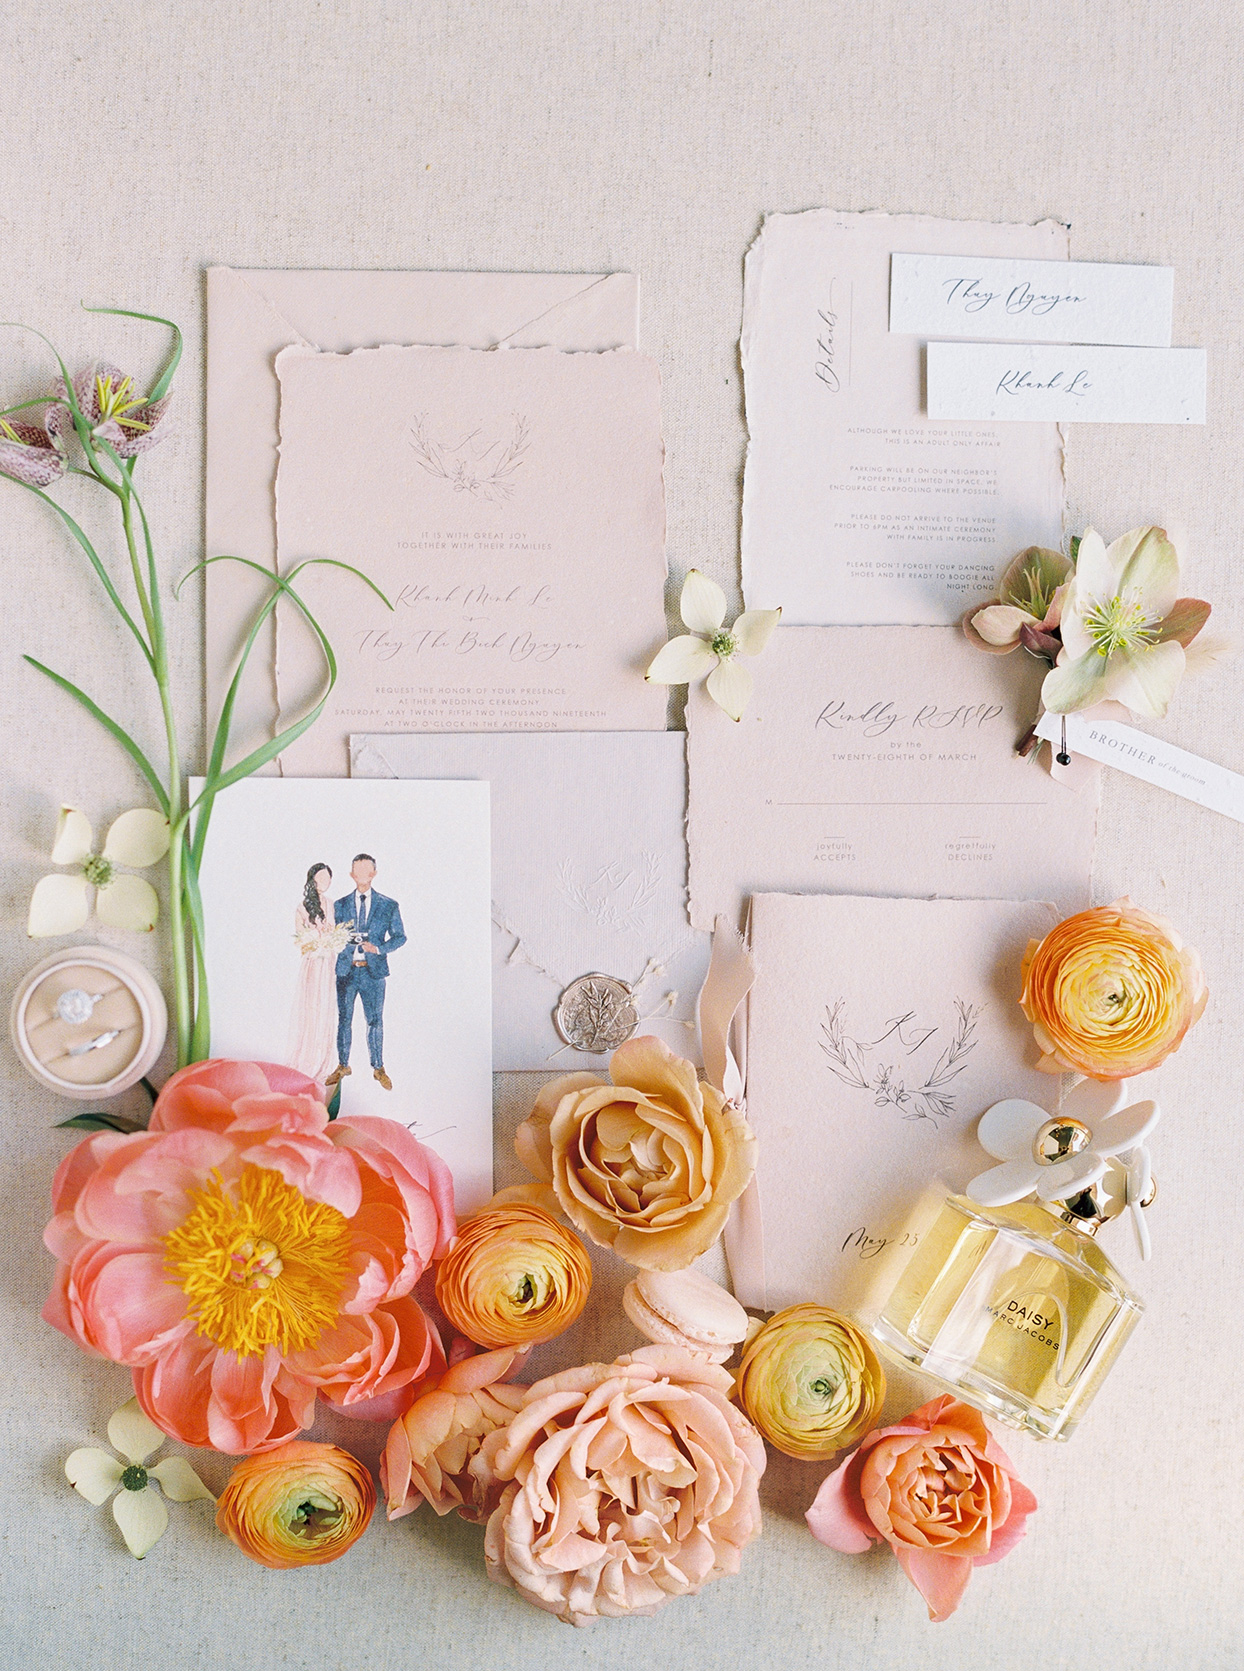 thuy kahn rustic wedding invitations with bright citrus flowers